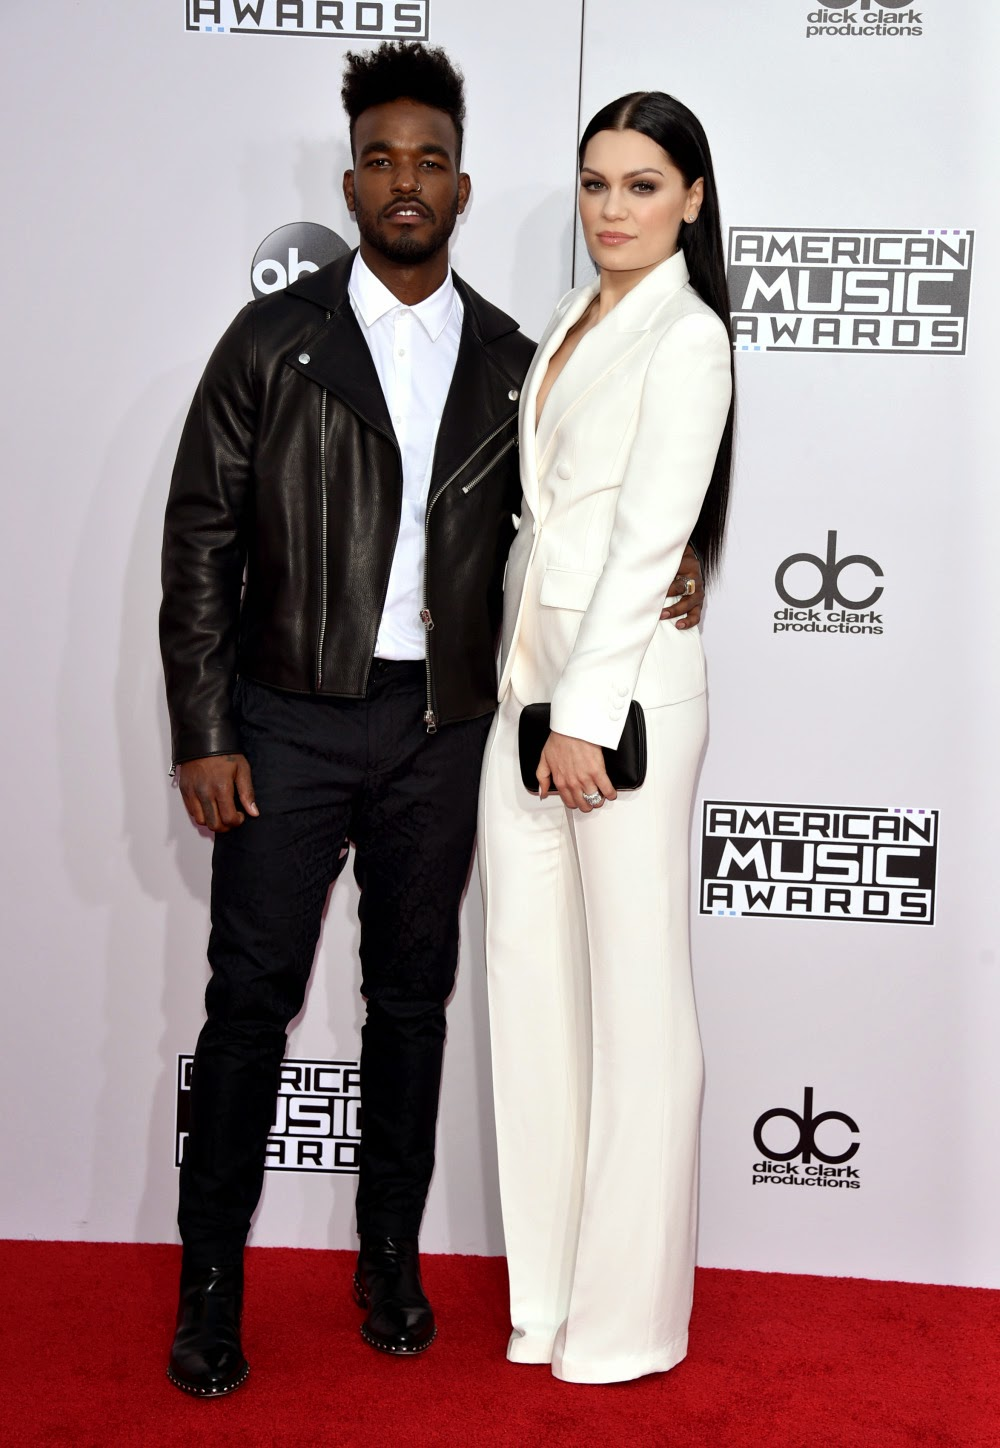 Jessie J & her Boyfriend - 2014 American Music Awards - Red Carpet